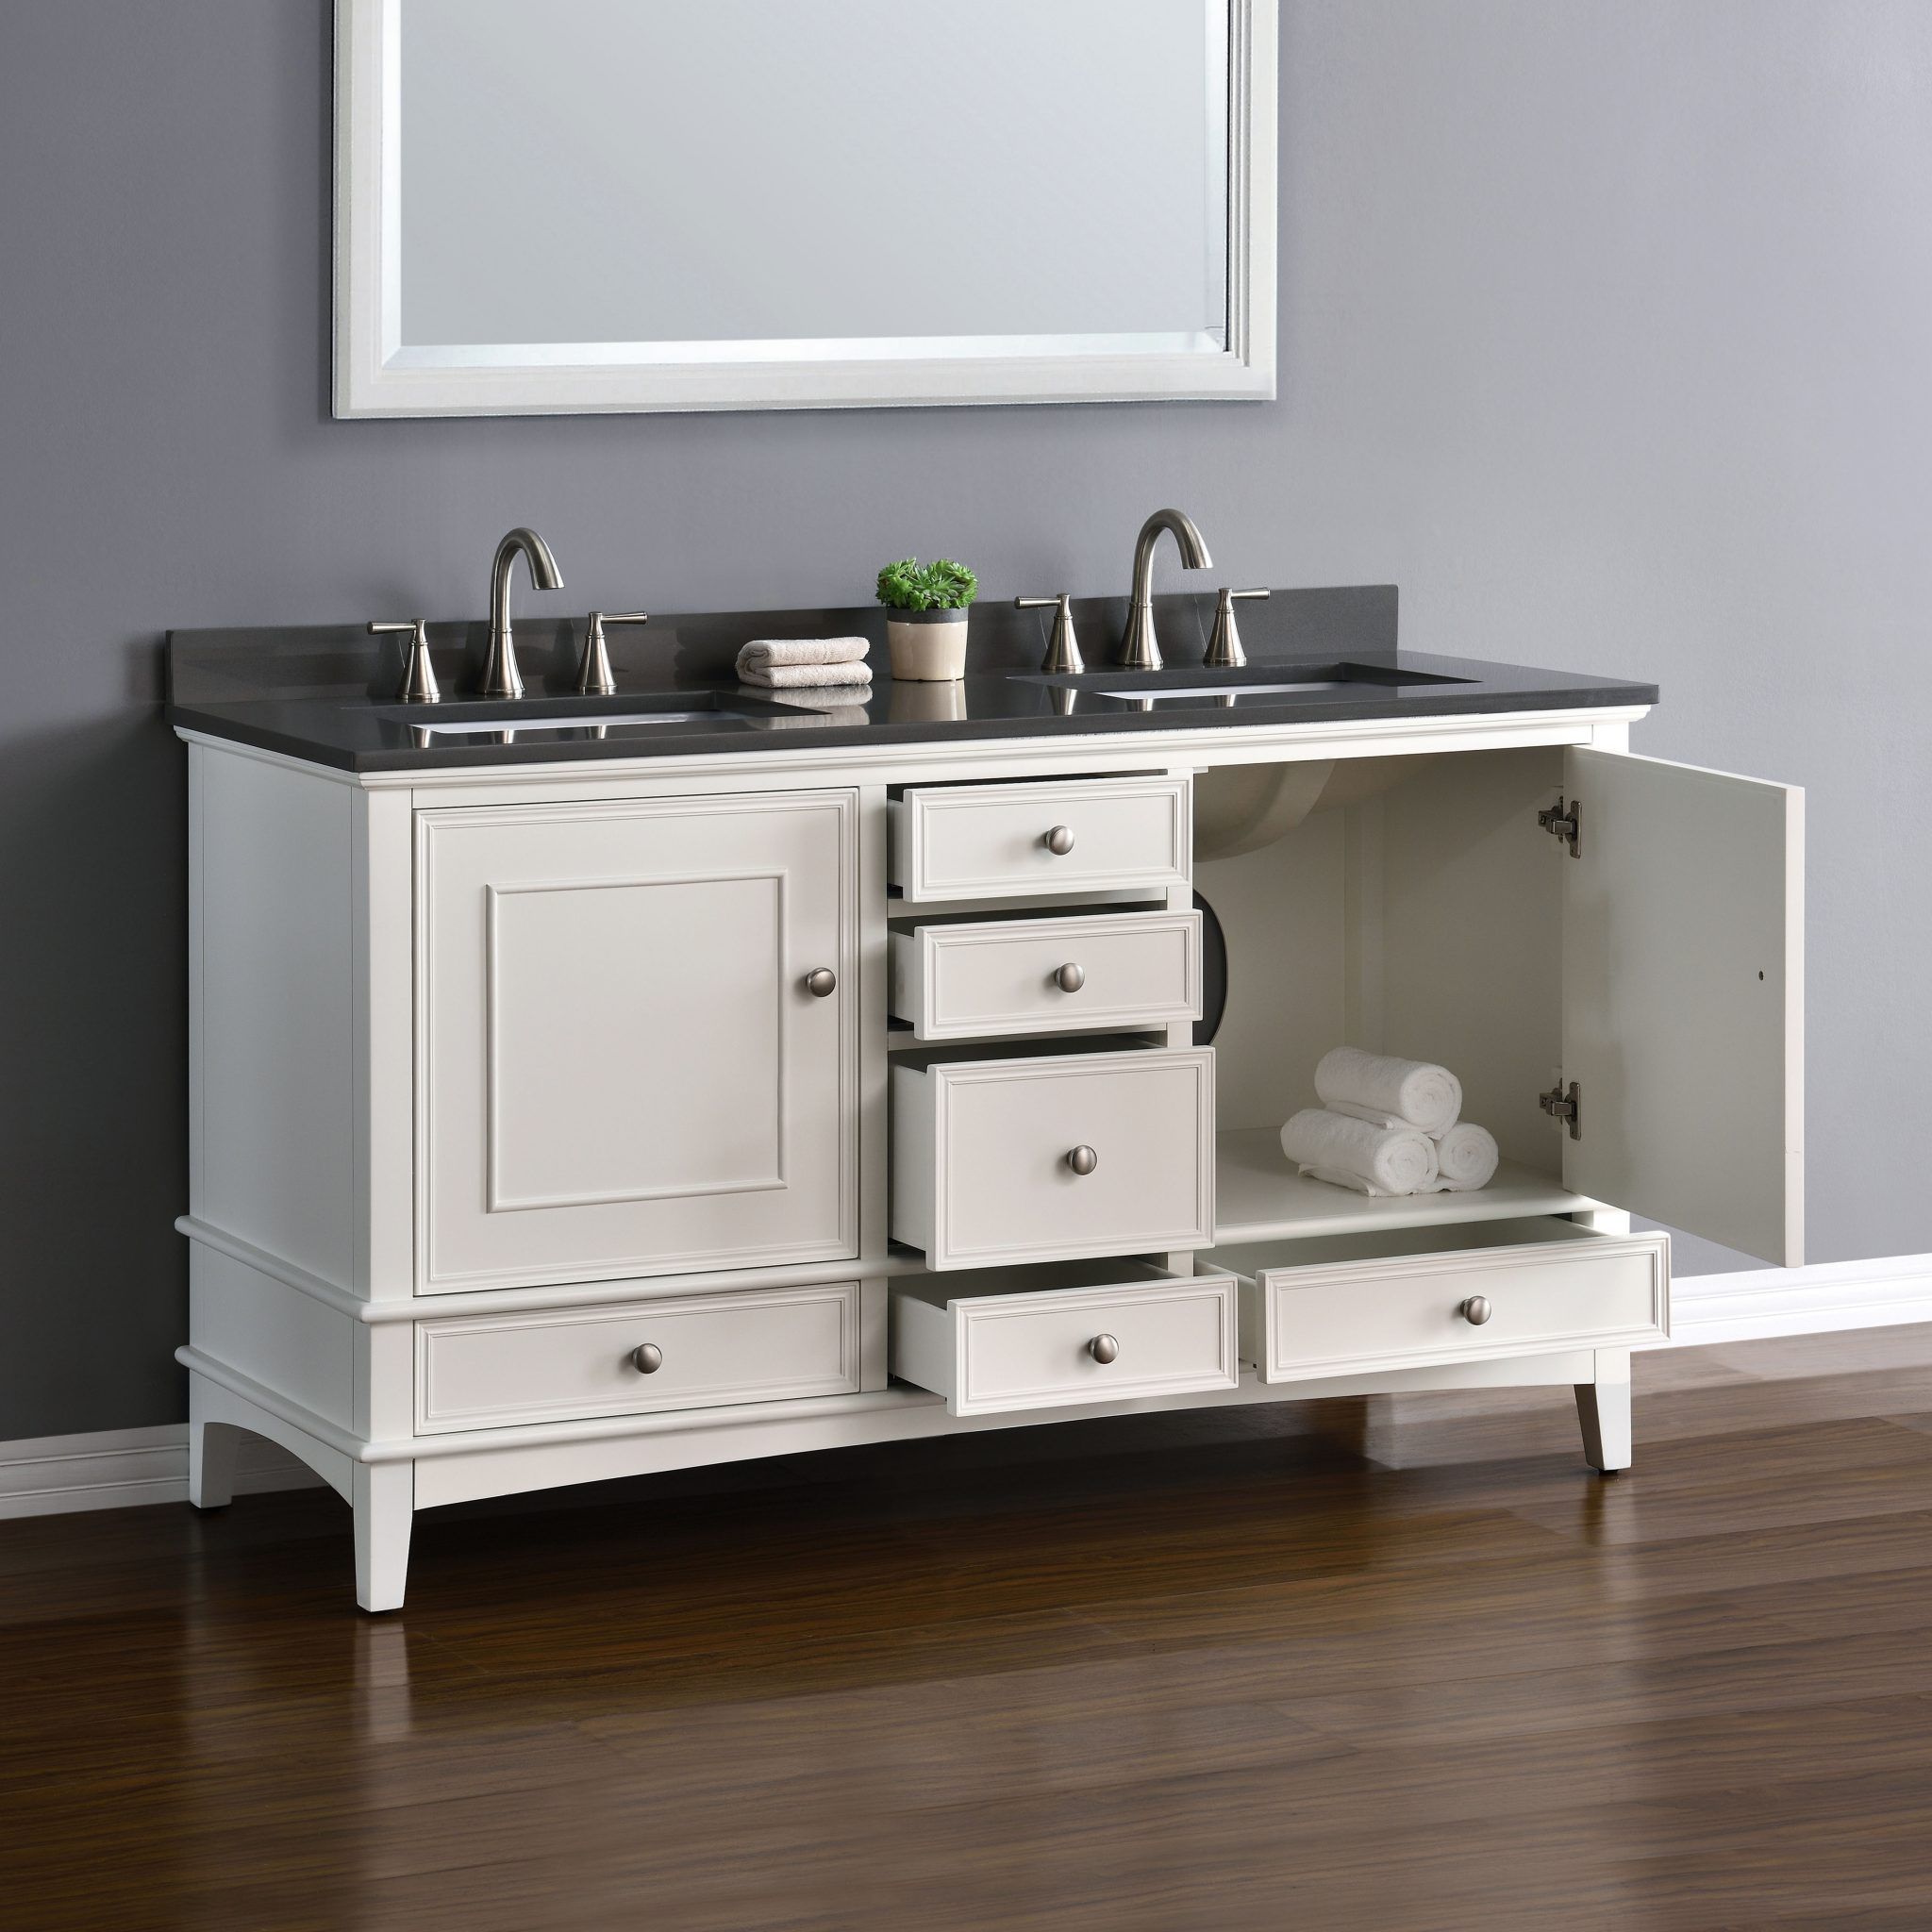 Quartz 60 Bathroom Vanity White Cabinet Double Sink Basin Hardwood Gray Quartz Ebay